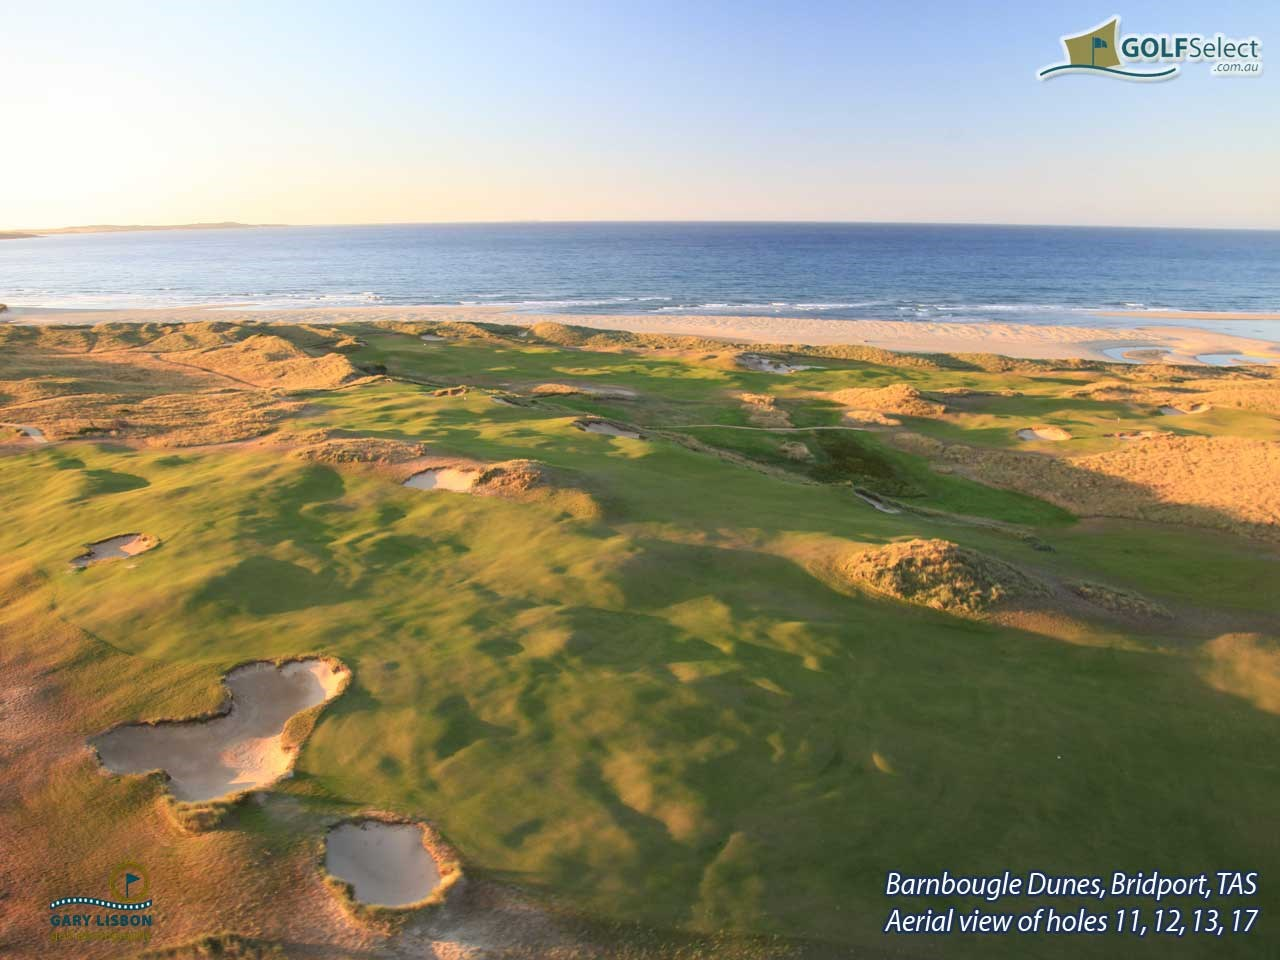 Barnbougle Dunes Golf Links Aerial image of holes 11, 12, 13 and 17